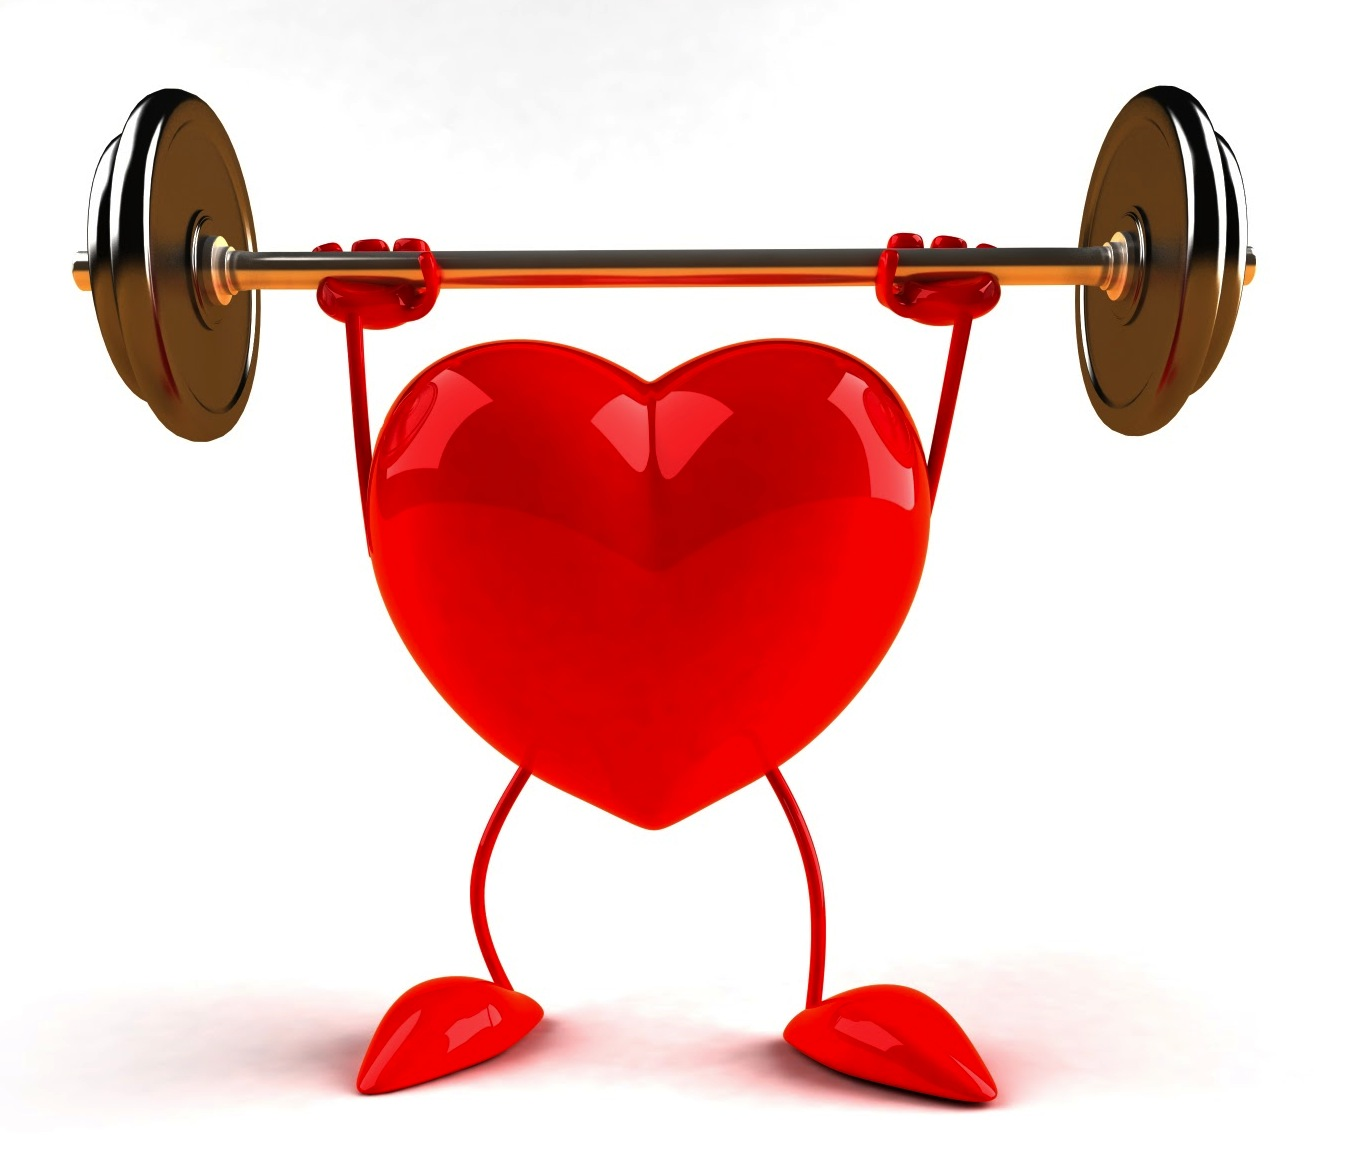 Whey protein benefits the heart